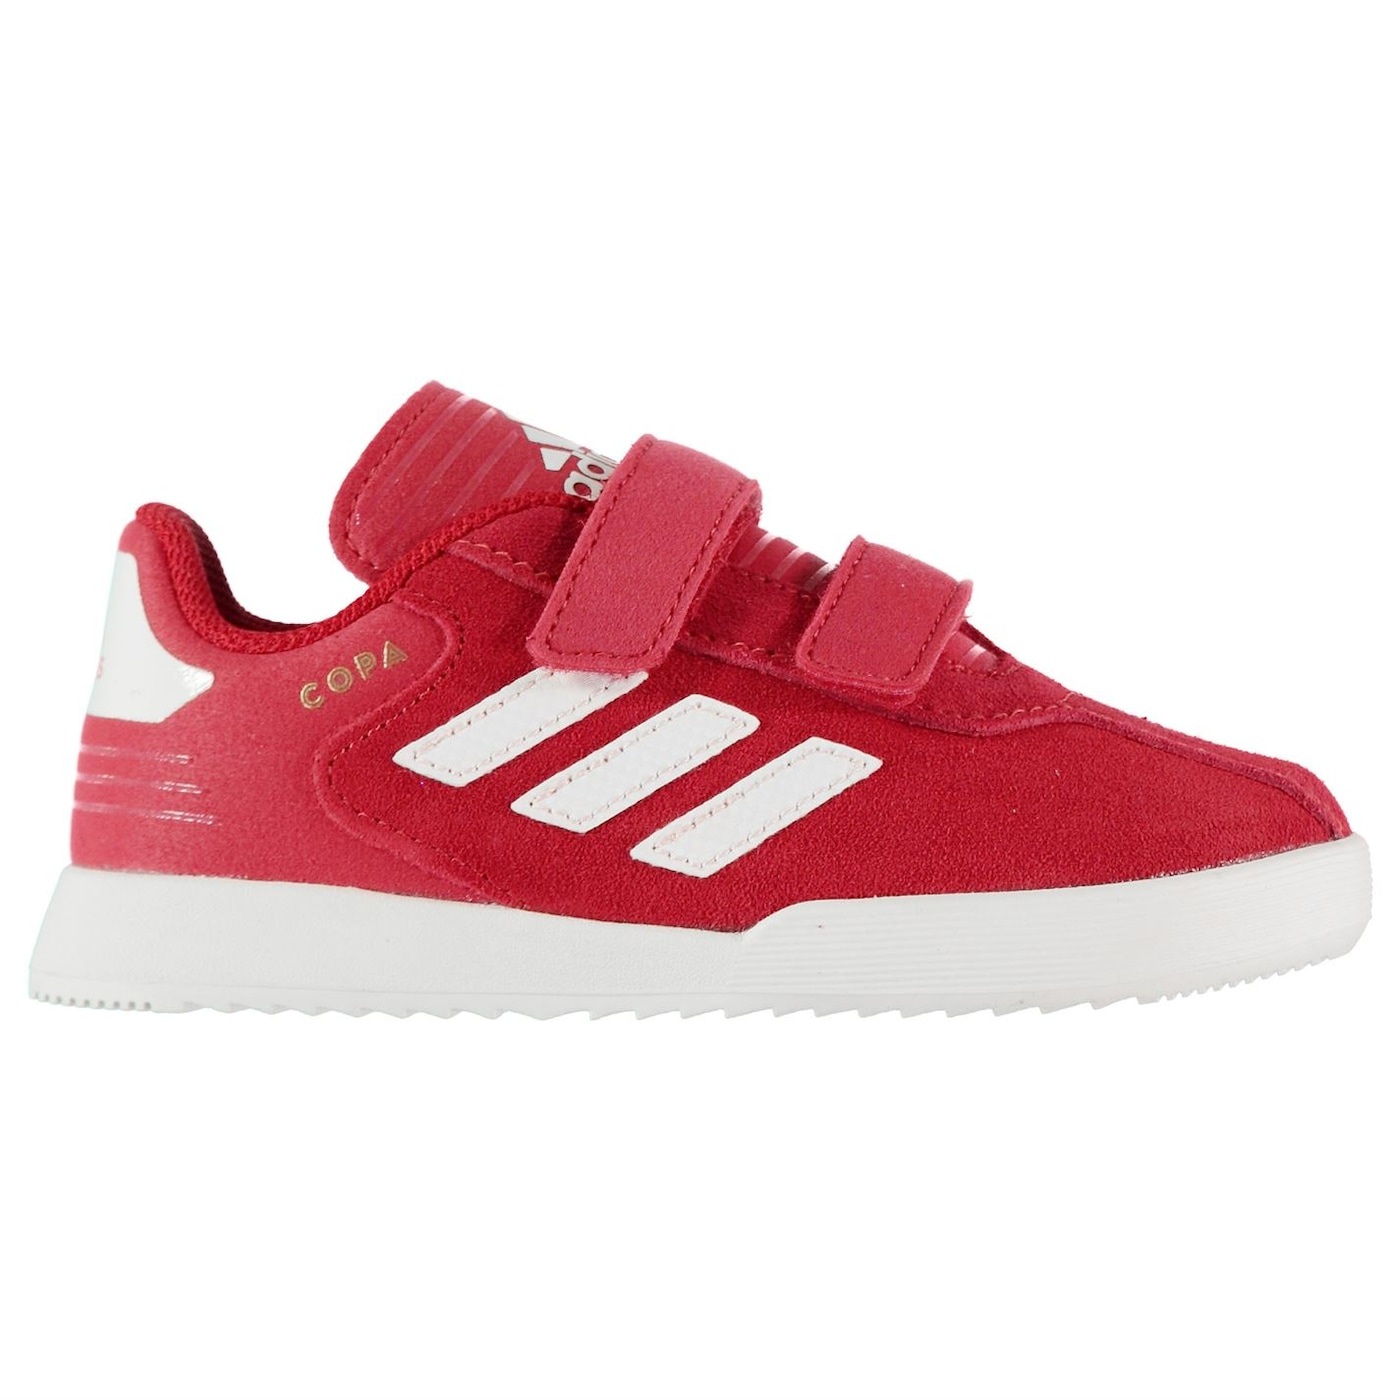 Adidas Copa Super Suede Infants Trainers